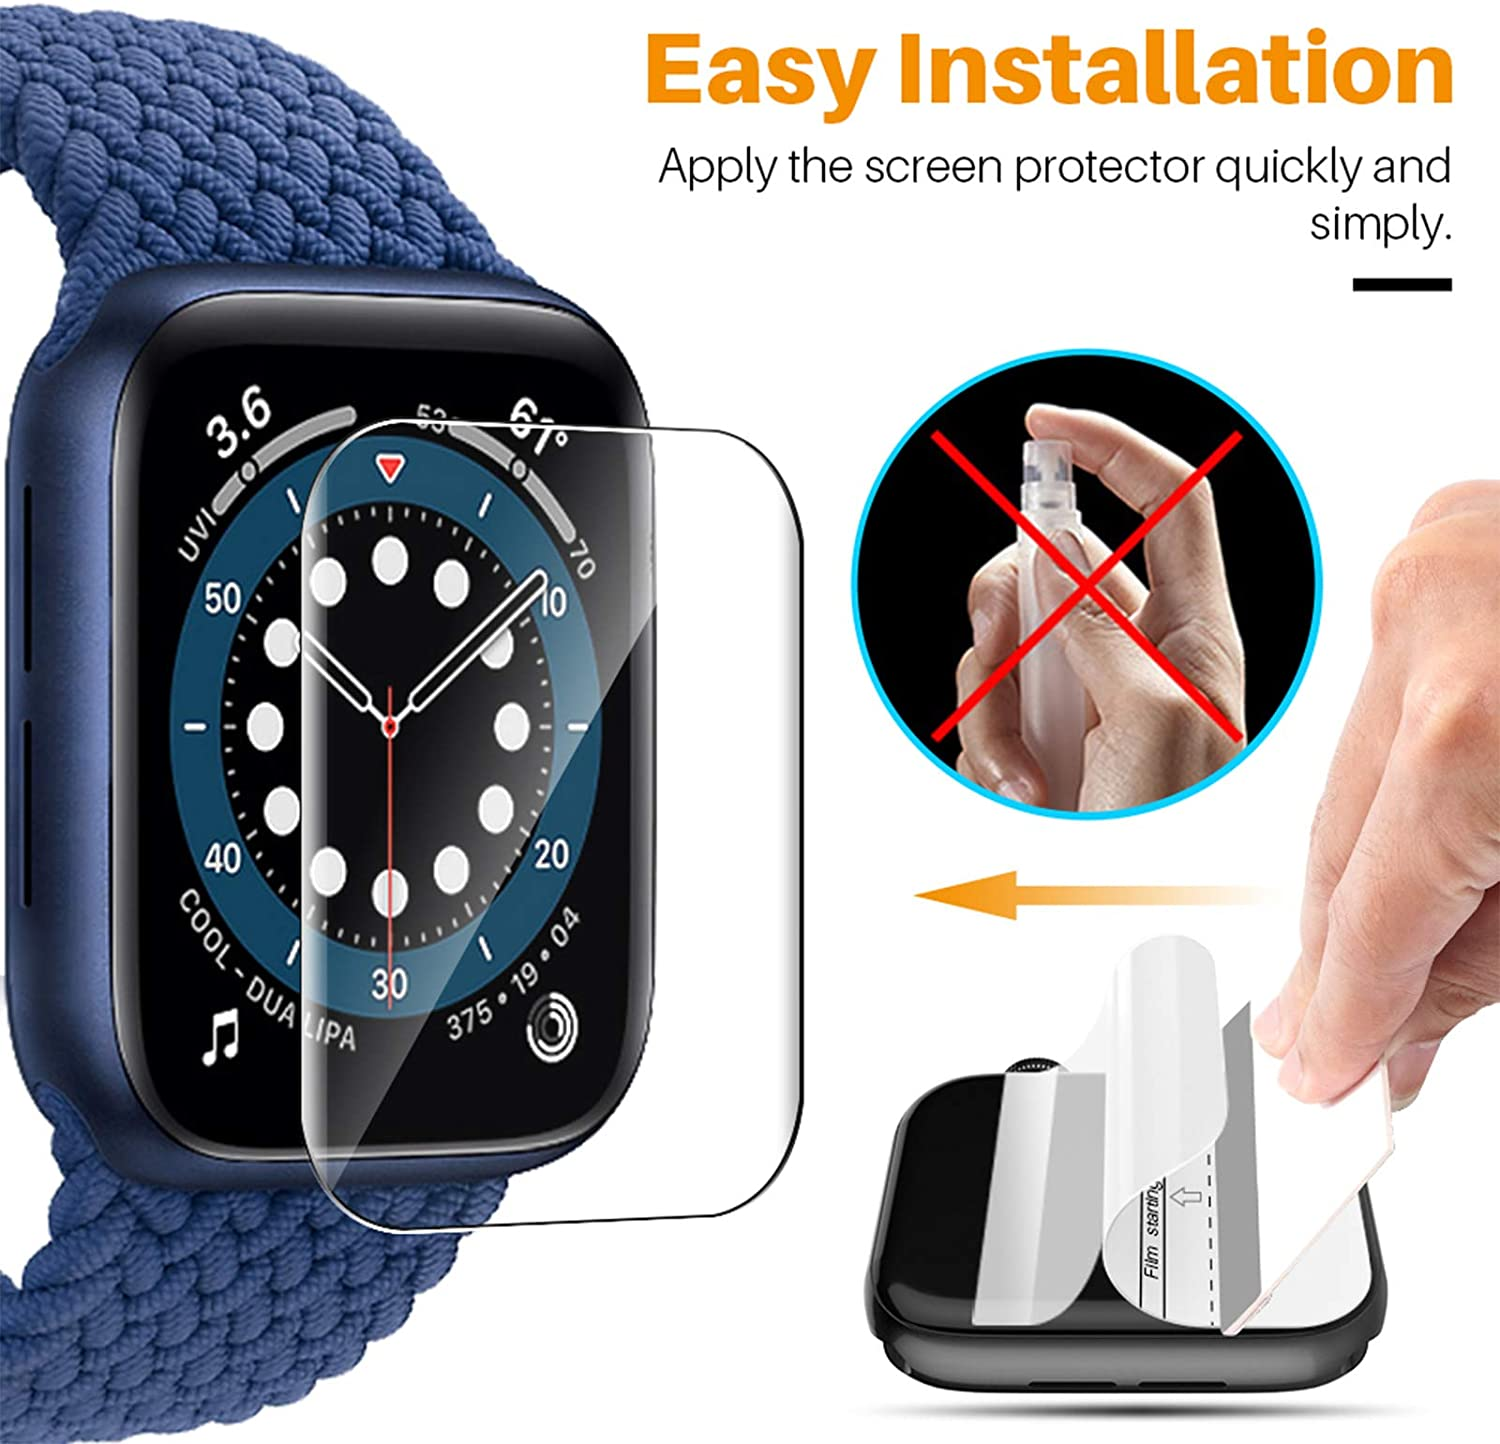 hd-film-for-apple-watch-screen-protector-44mm-40mm-42mm-38mm-iwatch-protector-accessories-for-apple-watch-series-3-4-5-6-se